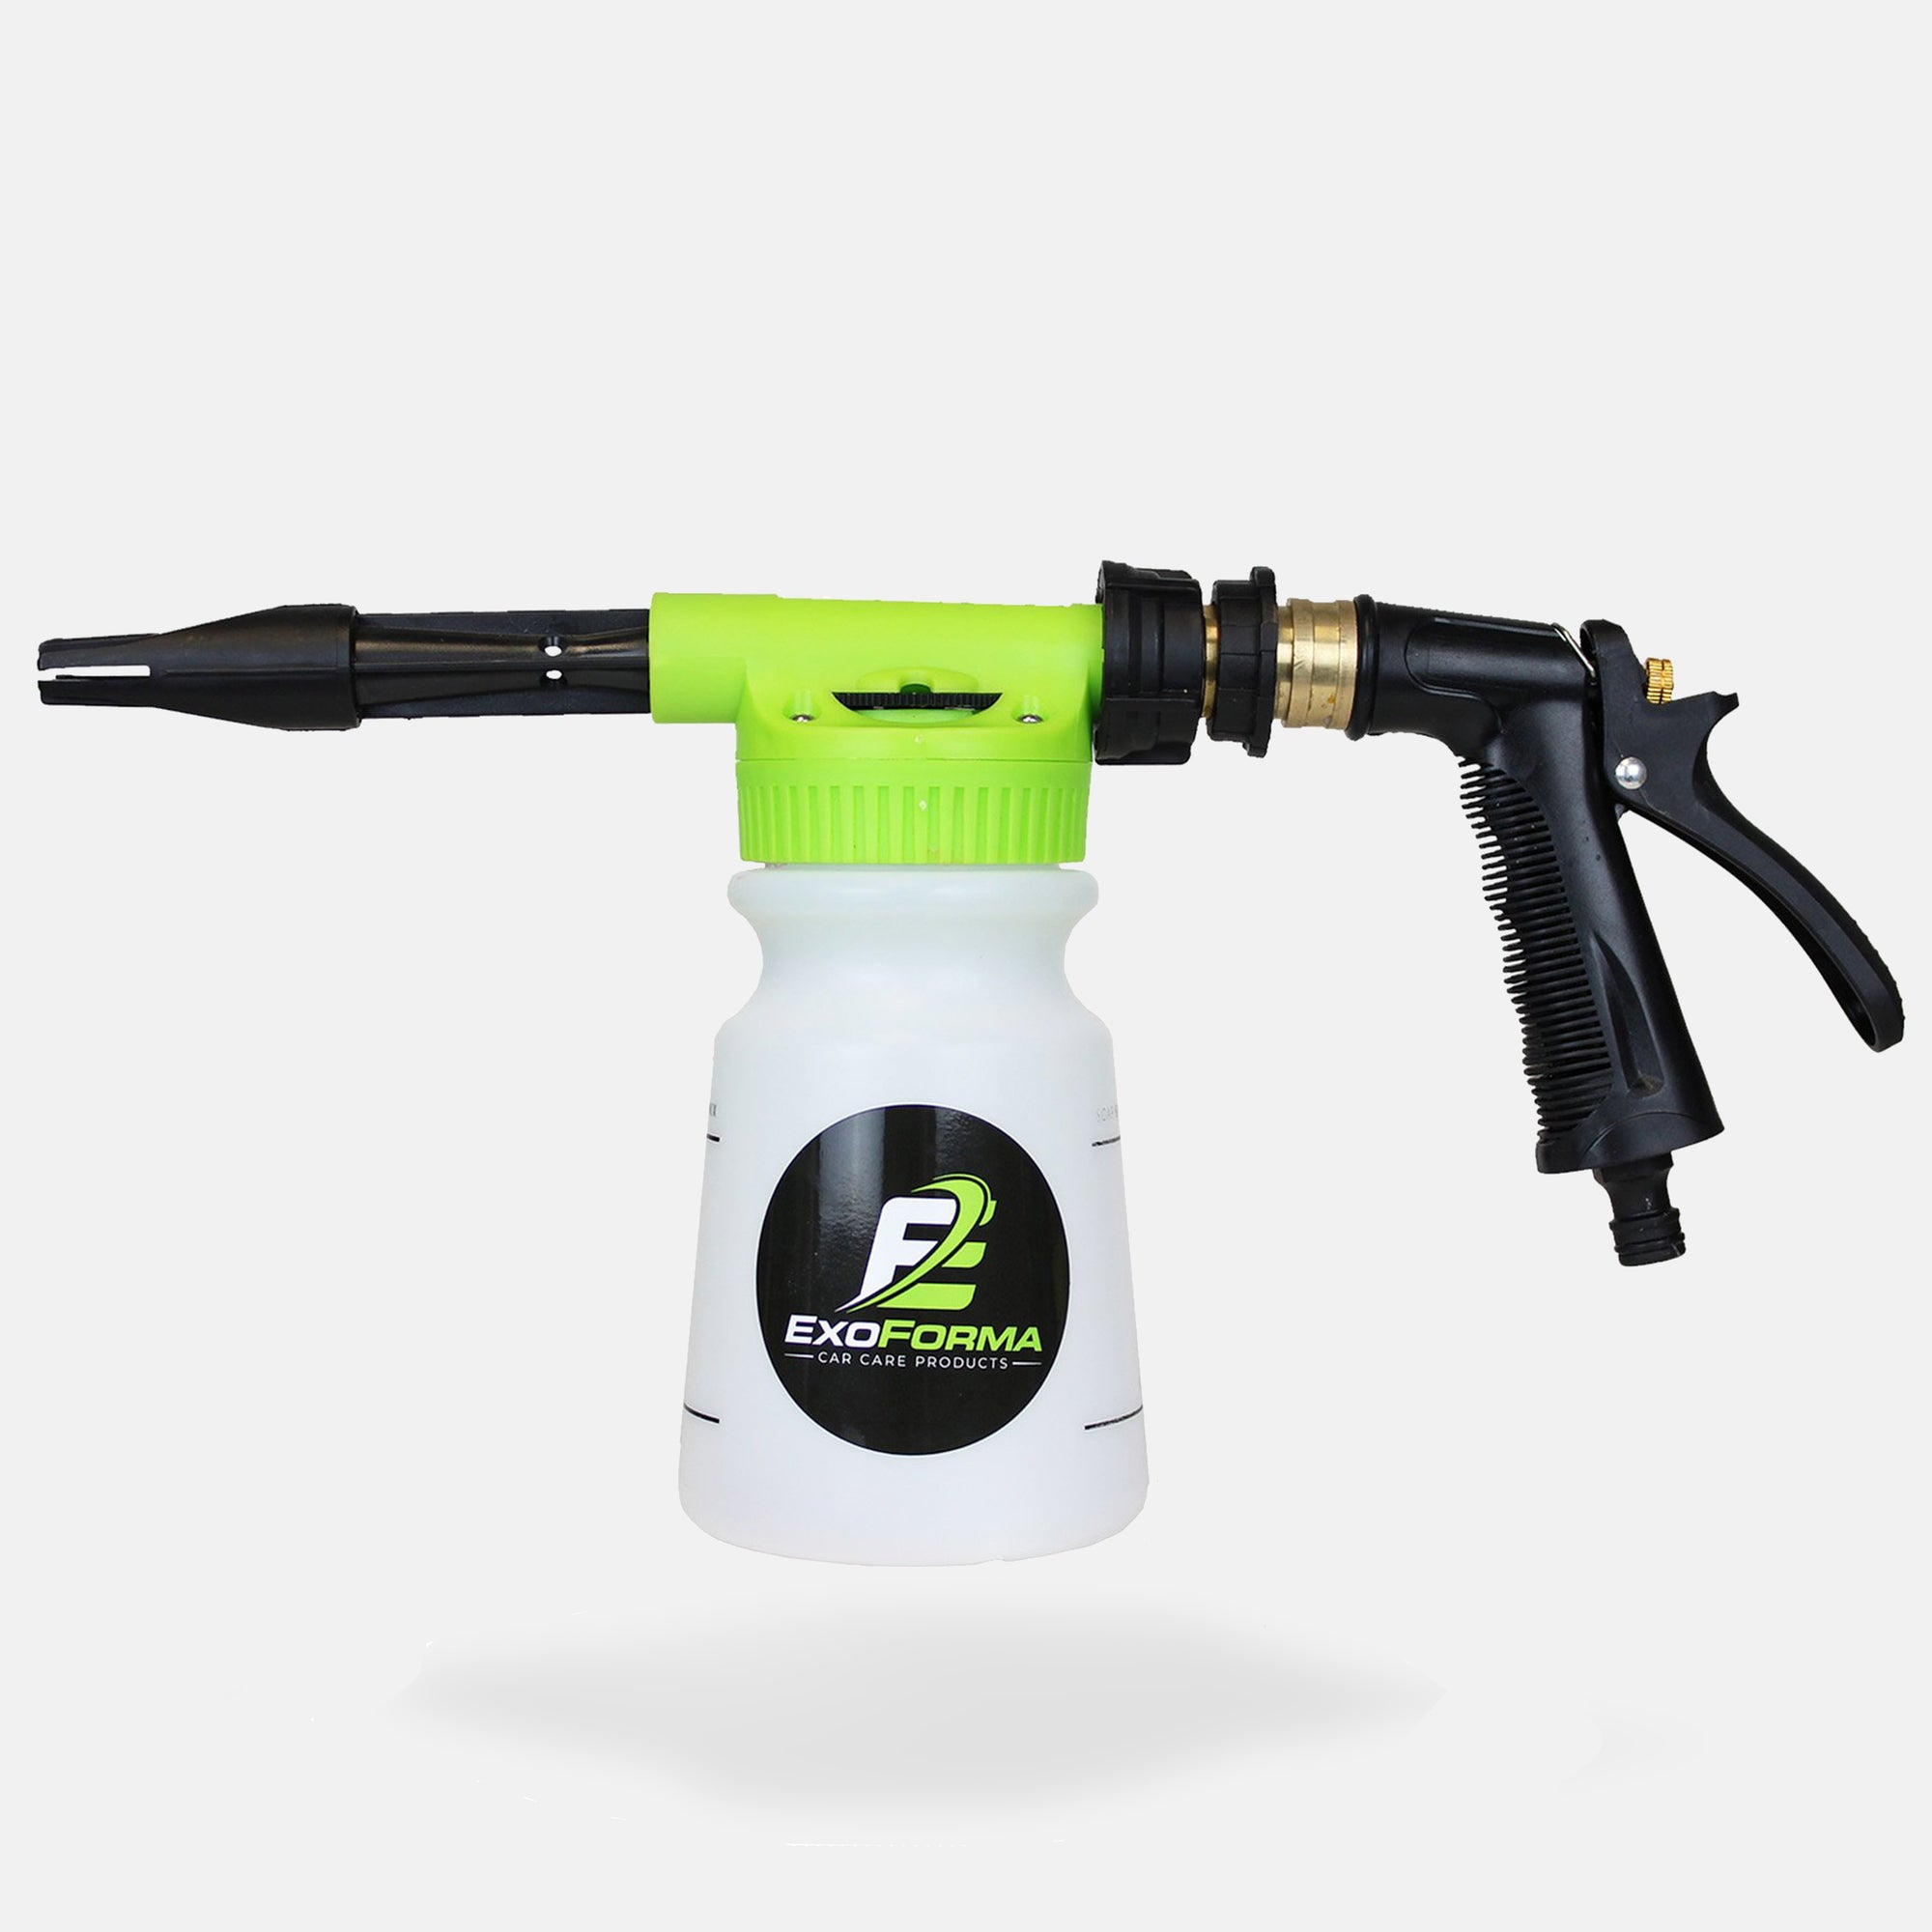 Foam Sprayer